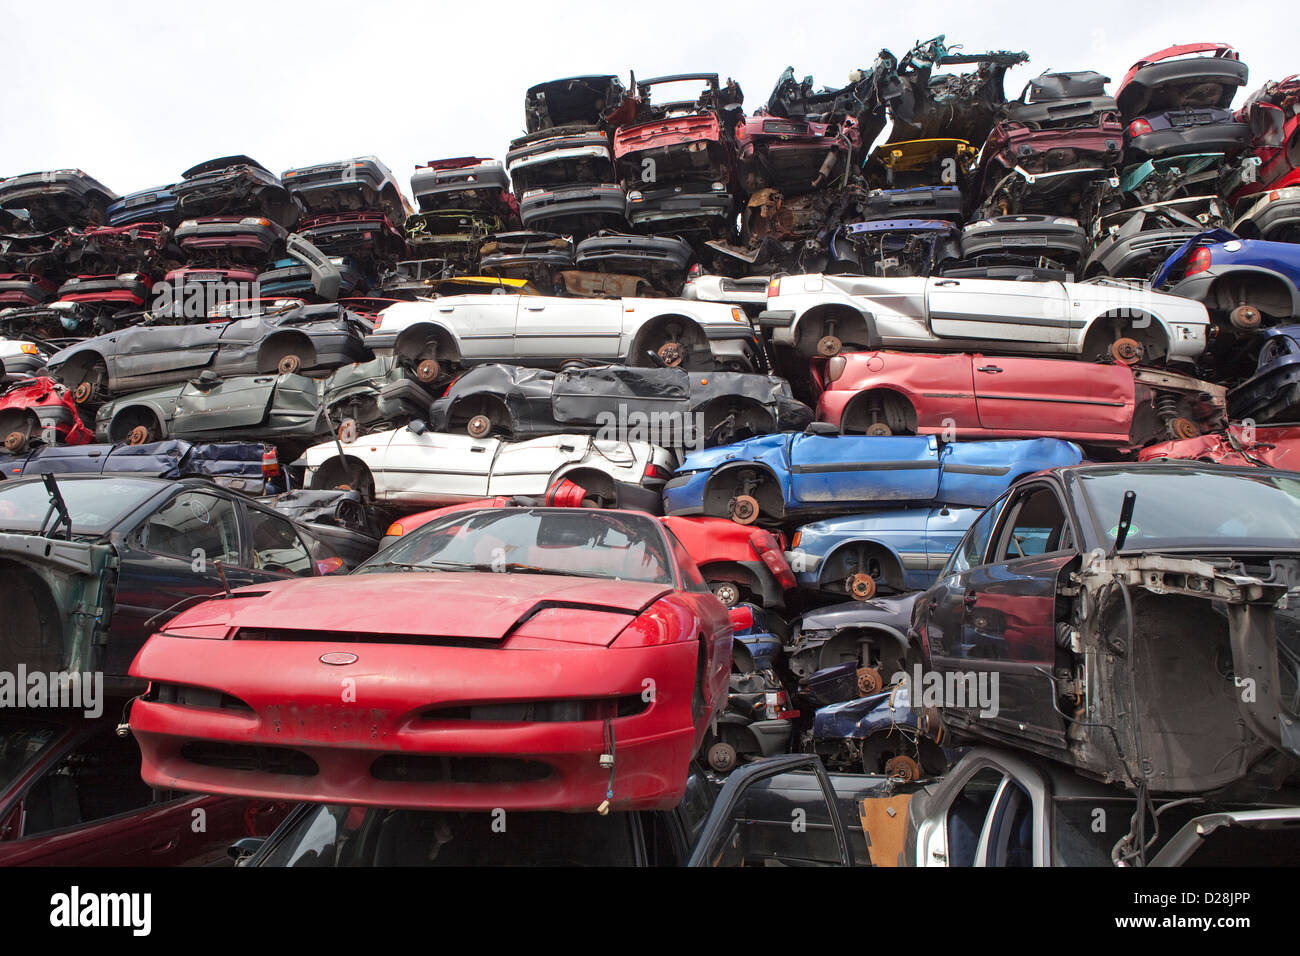 Trash Compactor Ruhr Germany Over Stacked Cars In A Junkyard Stock Photo